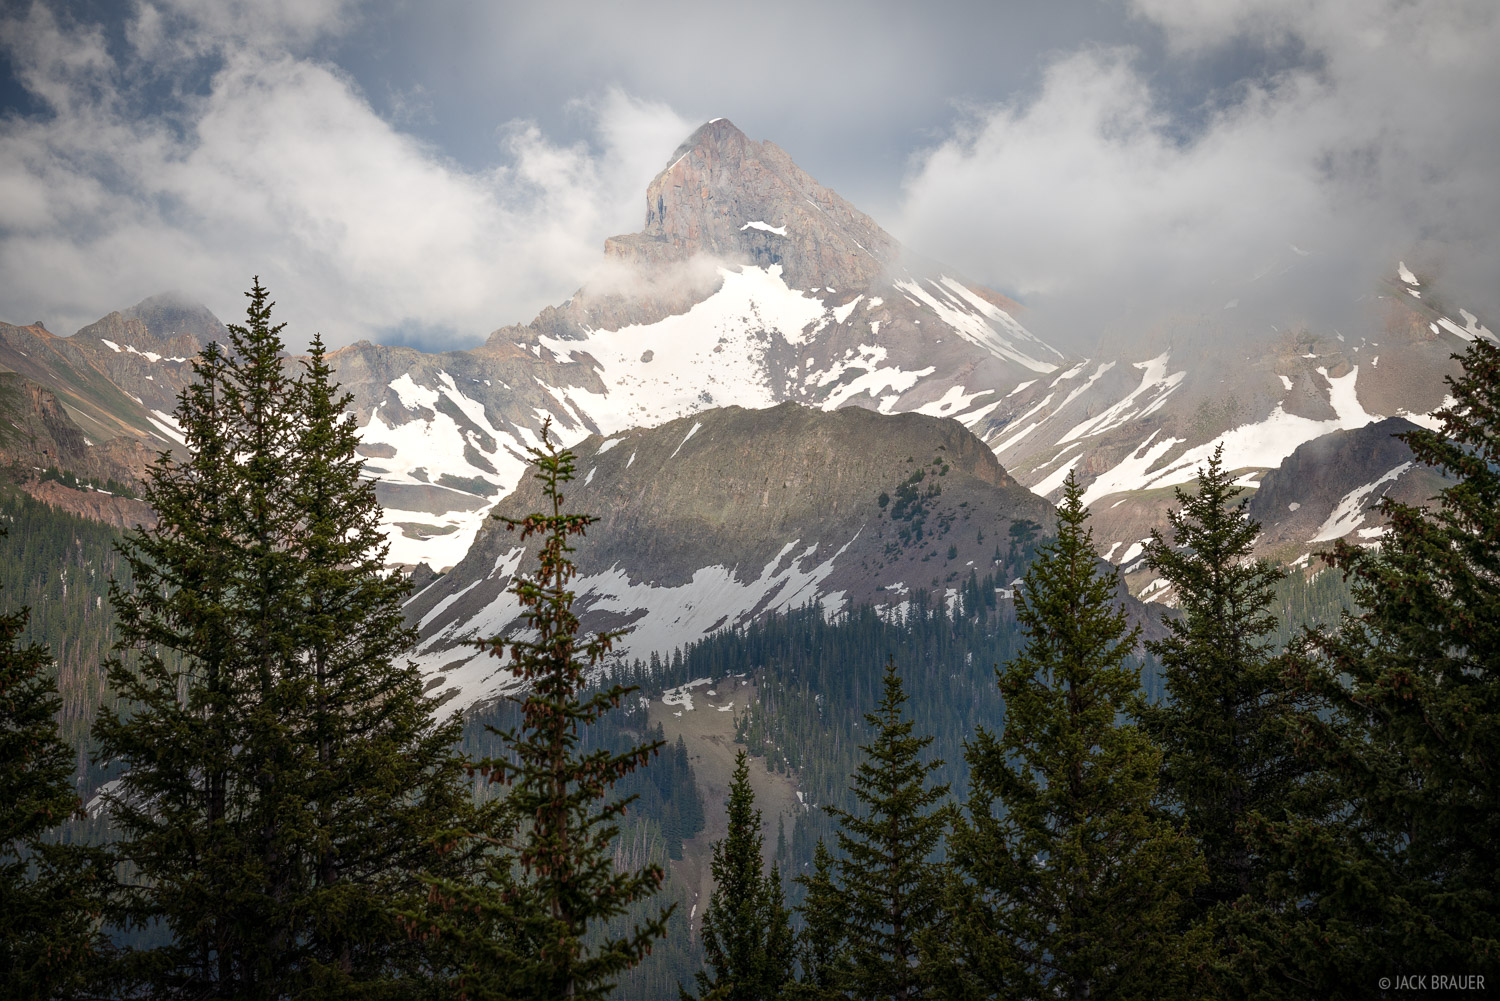 Clouds swirl off of Wetterhorn Peak after an intense thunderstorm.